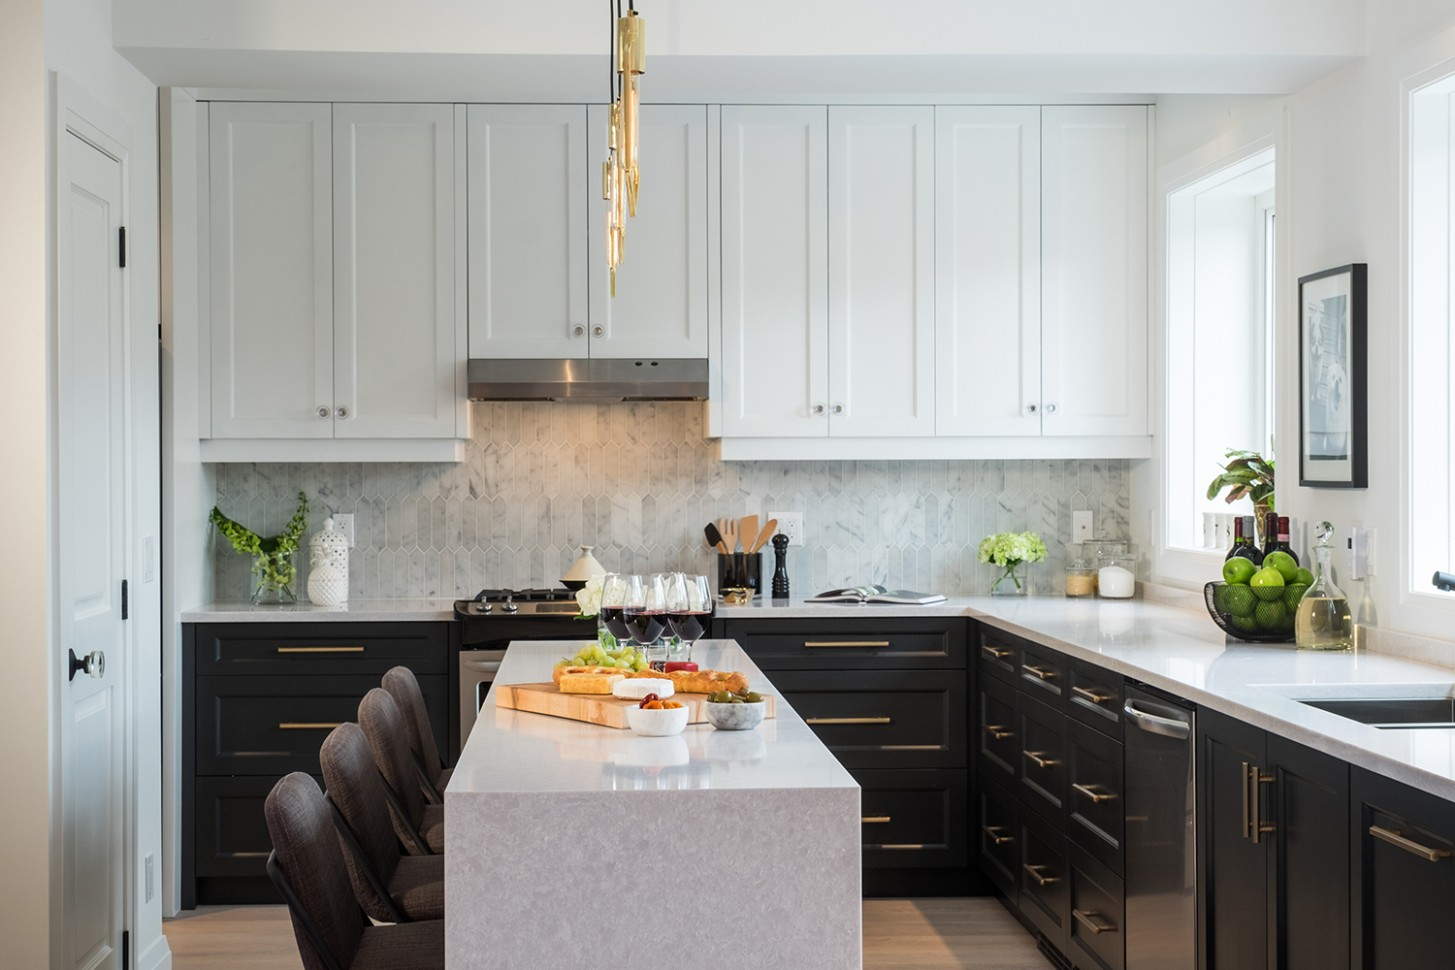 9 Timeless Kitchen Cabinet Ideas for Your Next Remodel - Kitchen Designs With White Upper Cabinets And Dark Lower Cabinets